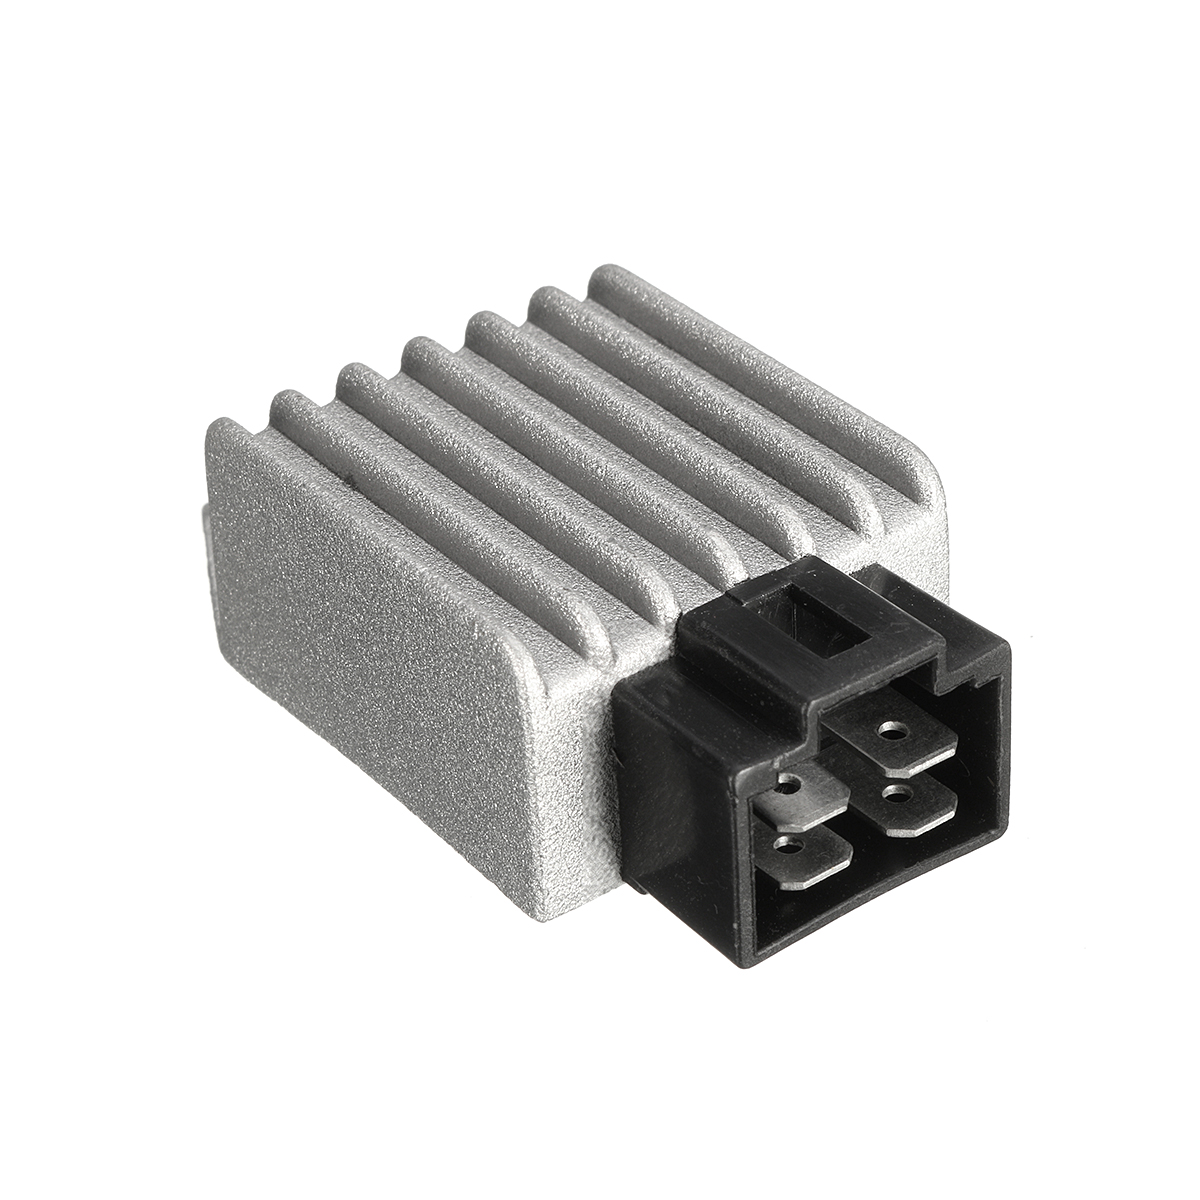 4 Pin 12v Voltage Regulator Rectifier For Gy6 50cc 125cc 150cc Moped Scooter Atv Sale